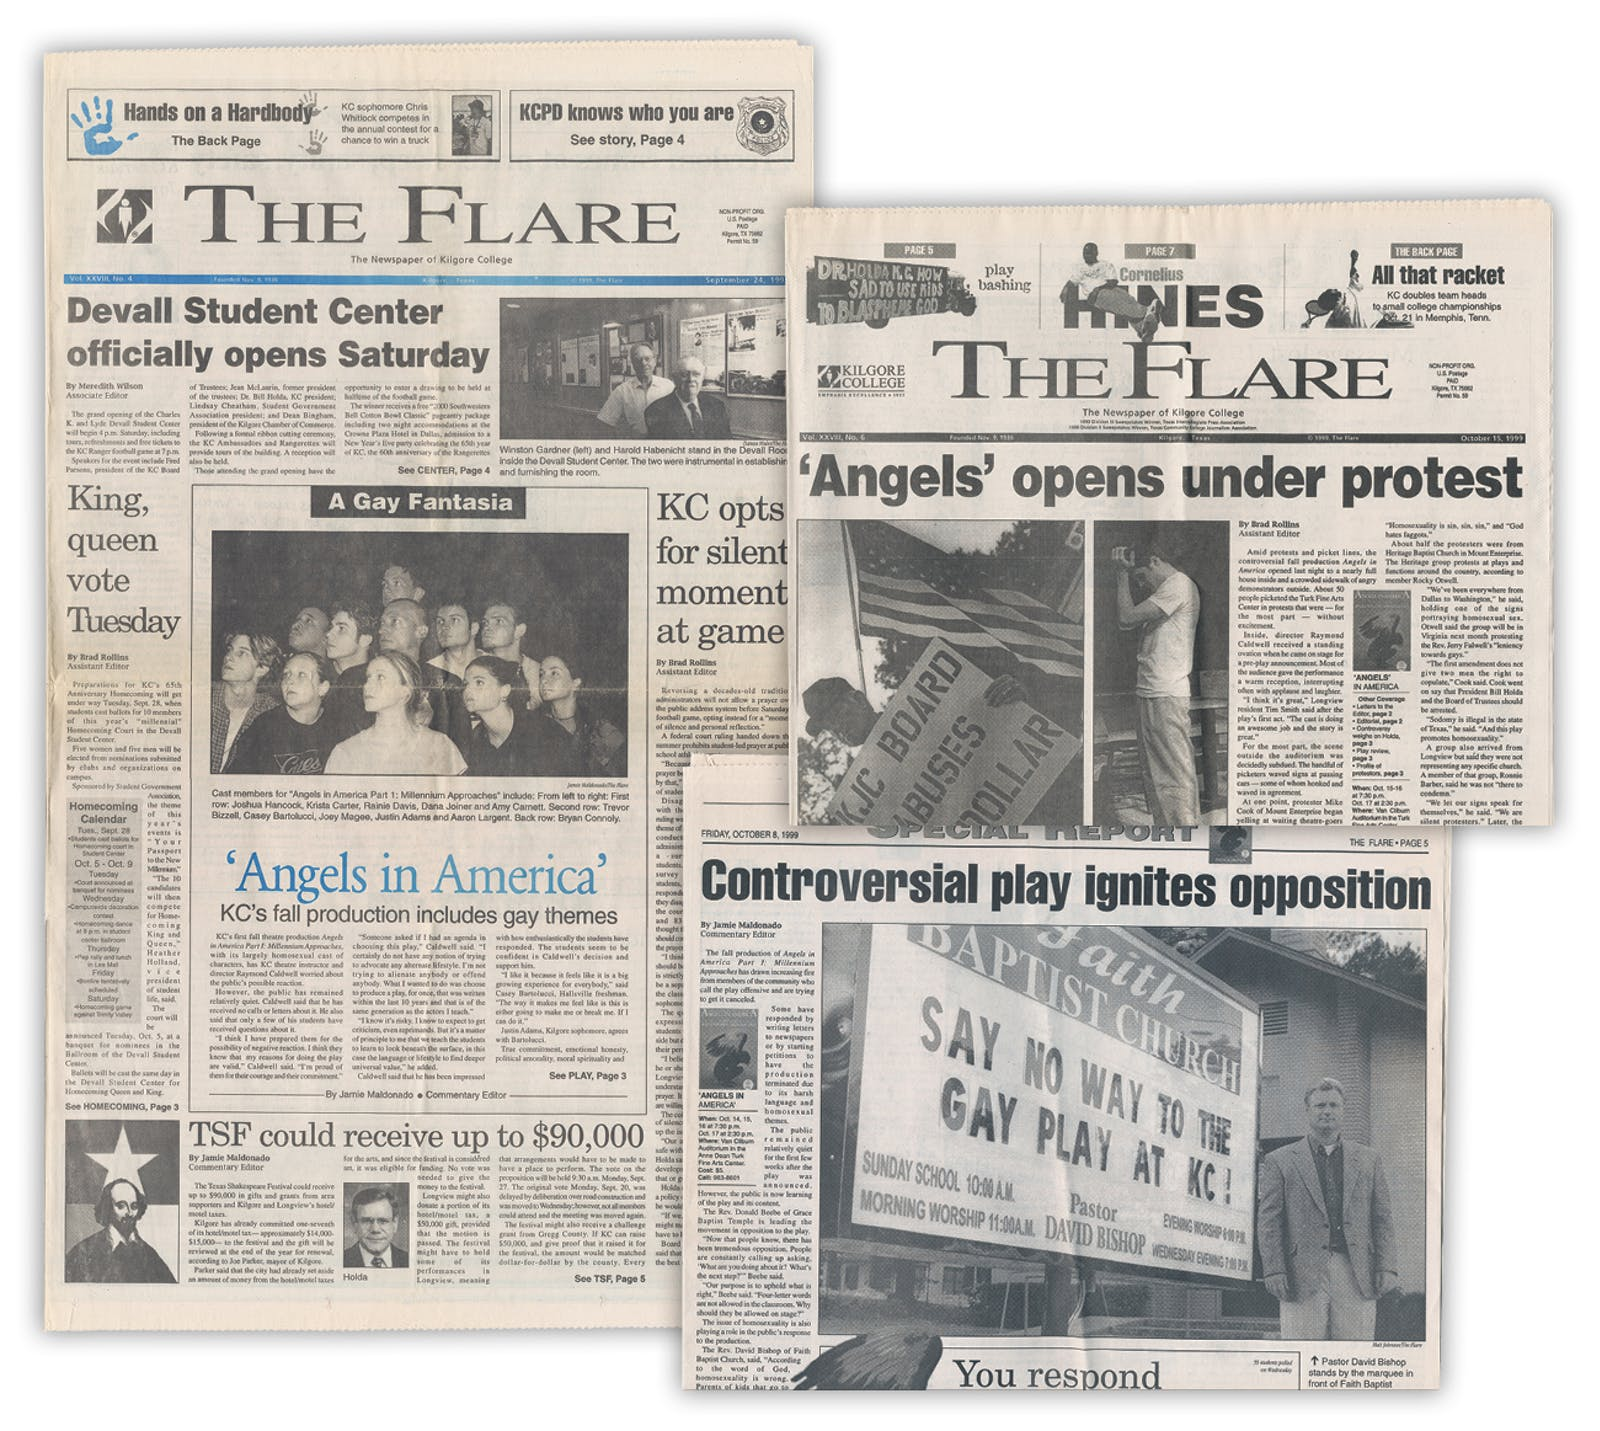 Copies of the college's newspaper, the Flare, published during the controversy over Angels in America, in 1999.